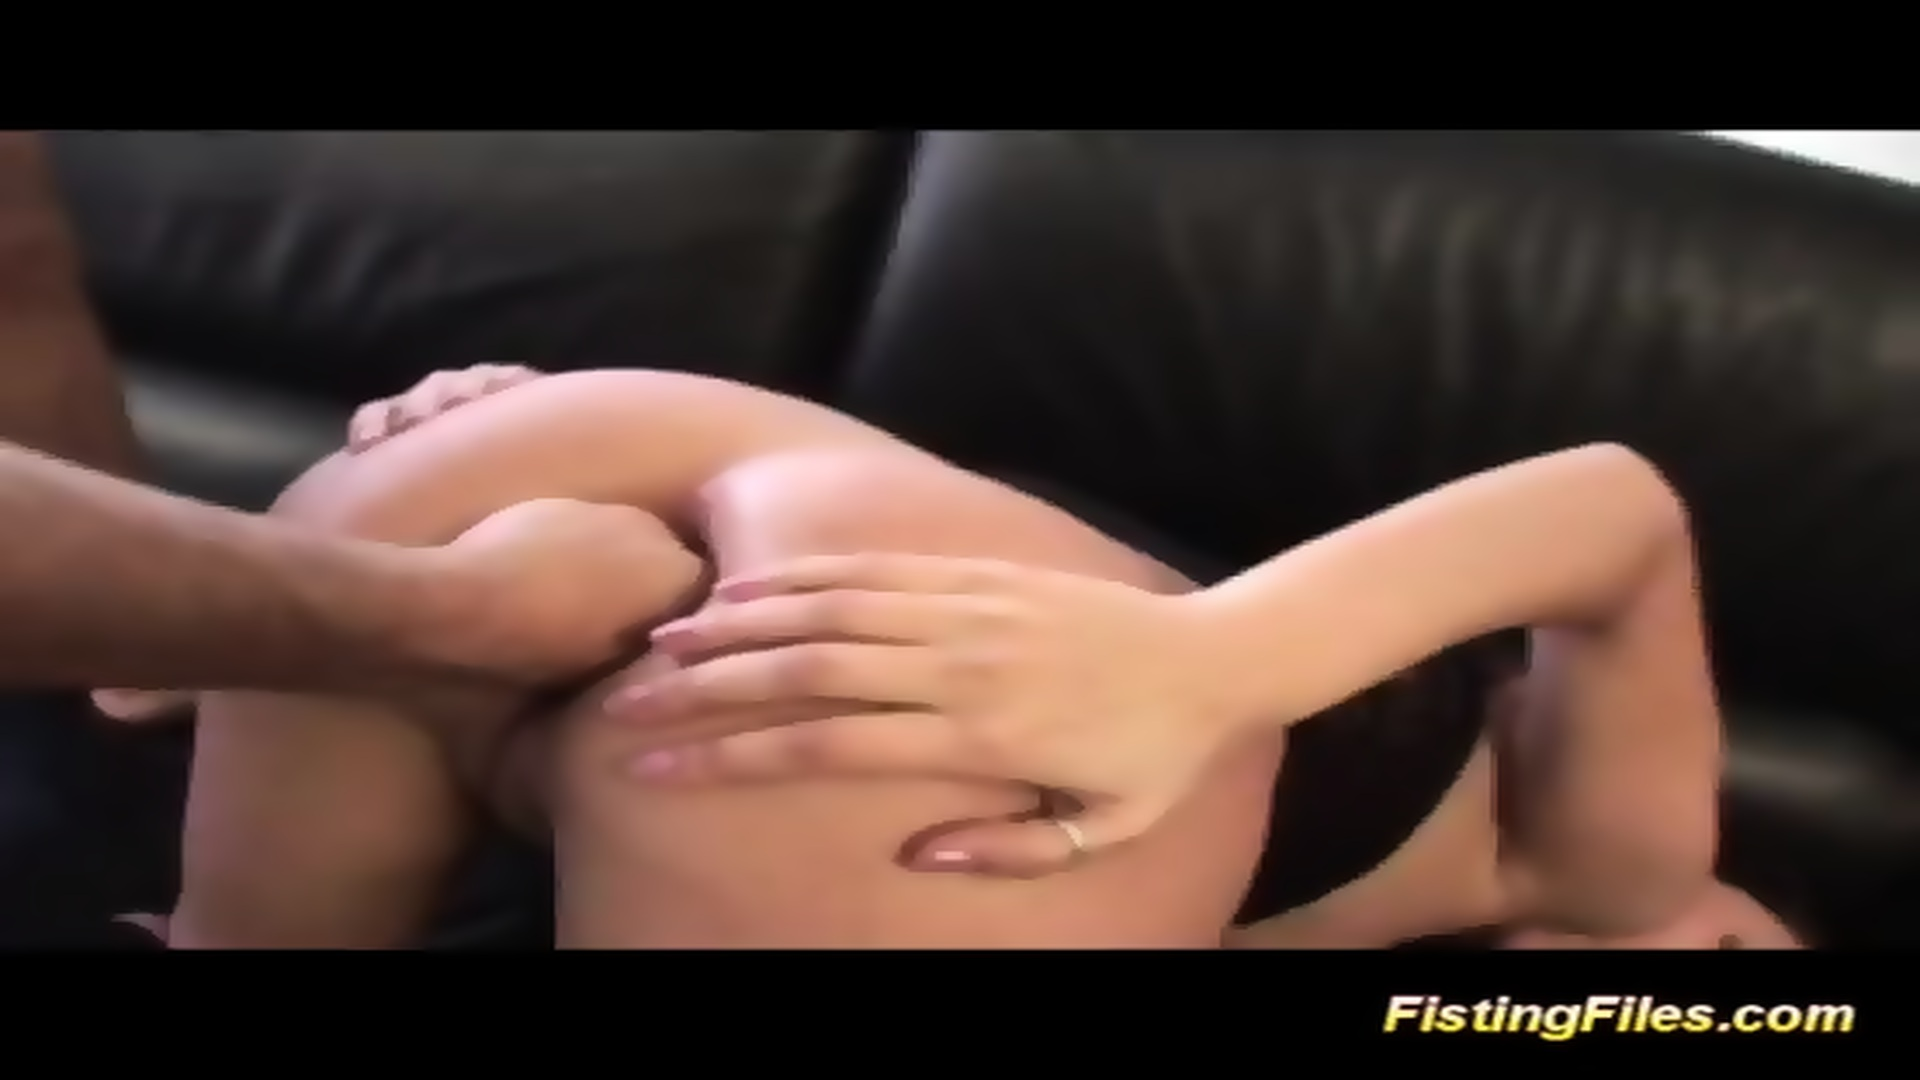 Rough anal fisting